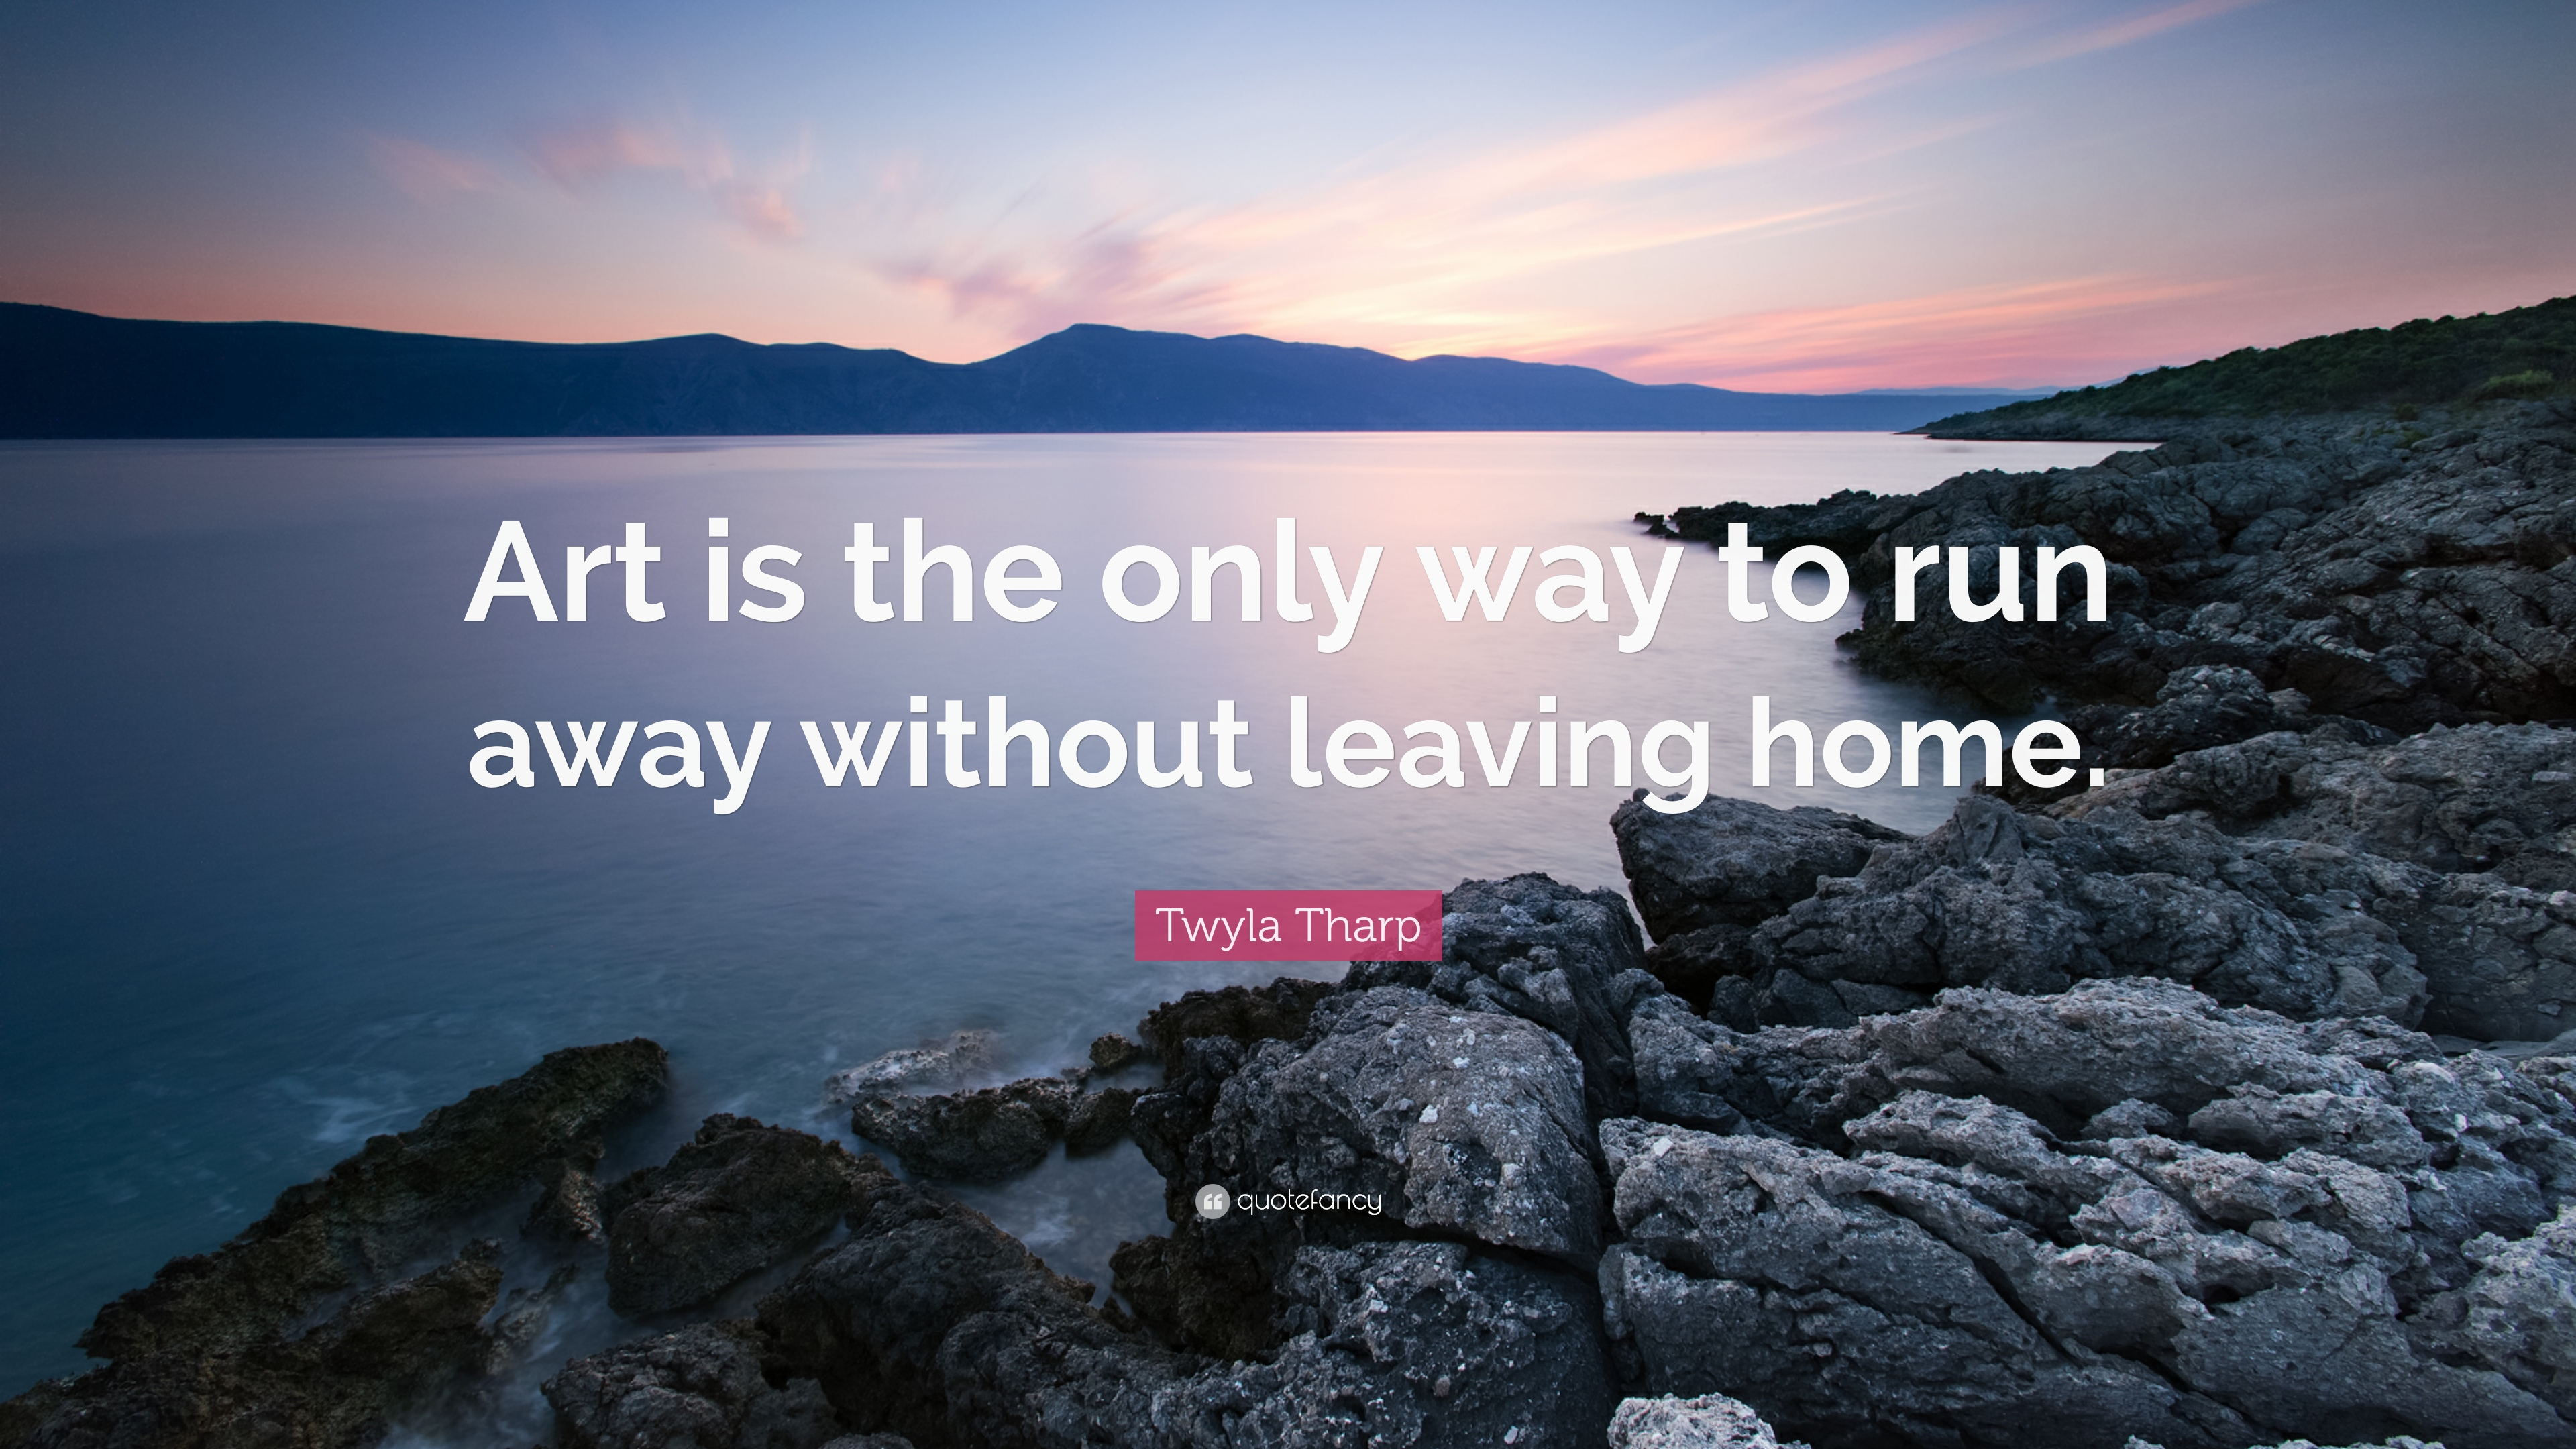 Twyla Tharp Quote Art is the only way to run away without